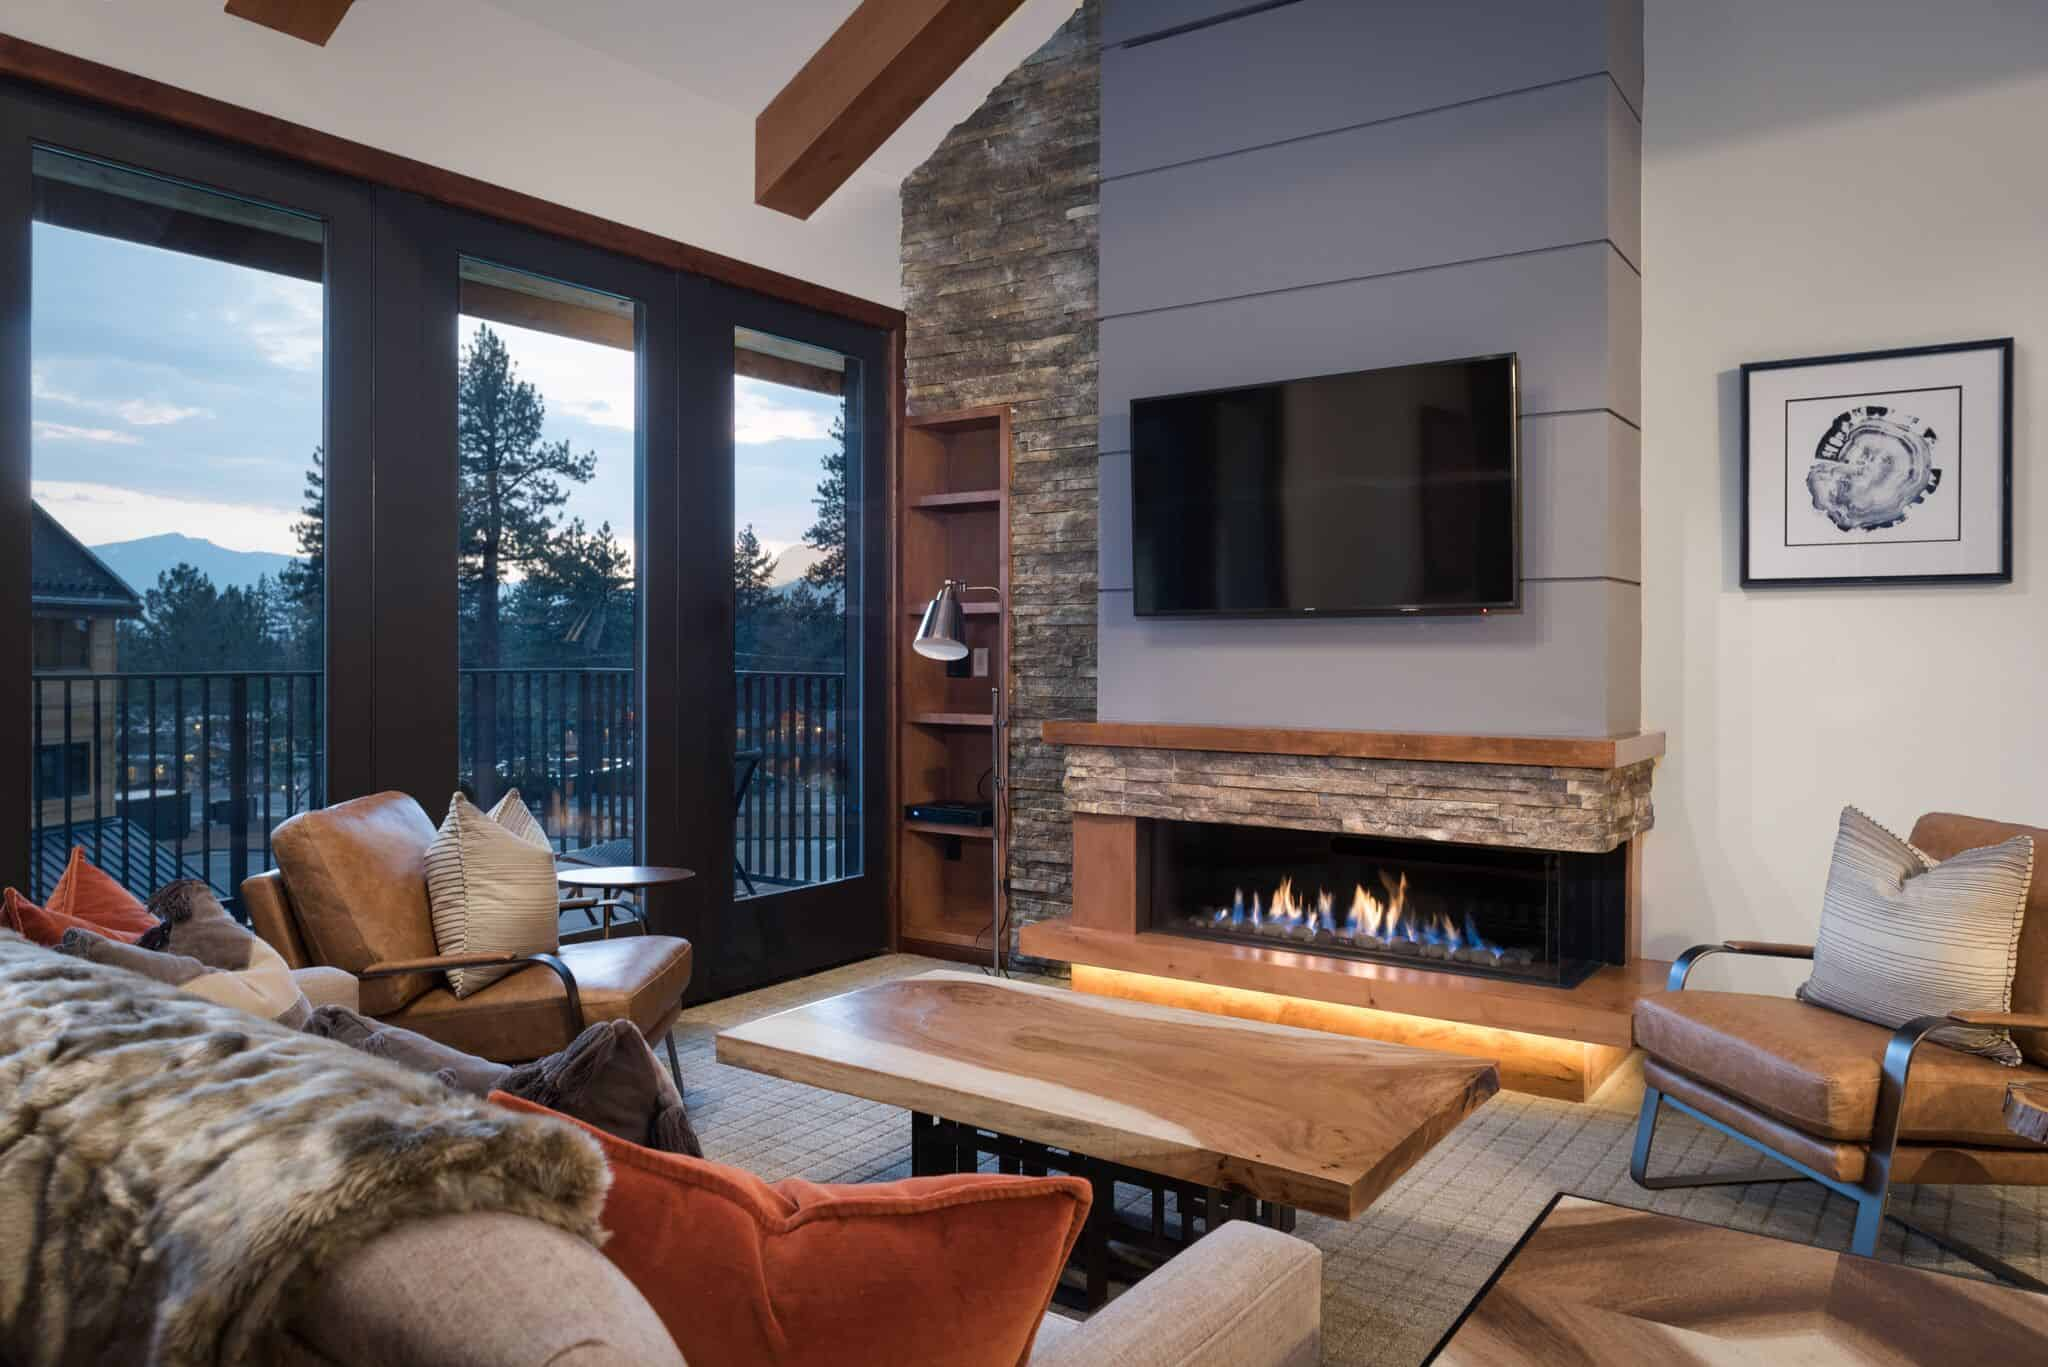 Modern Fireplace Images Modern Fireplace Design In An Industrial Style Living Room In